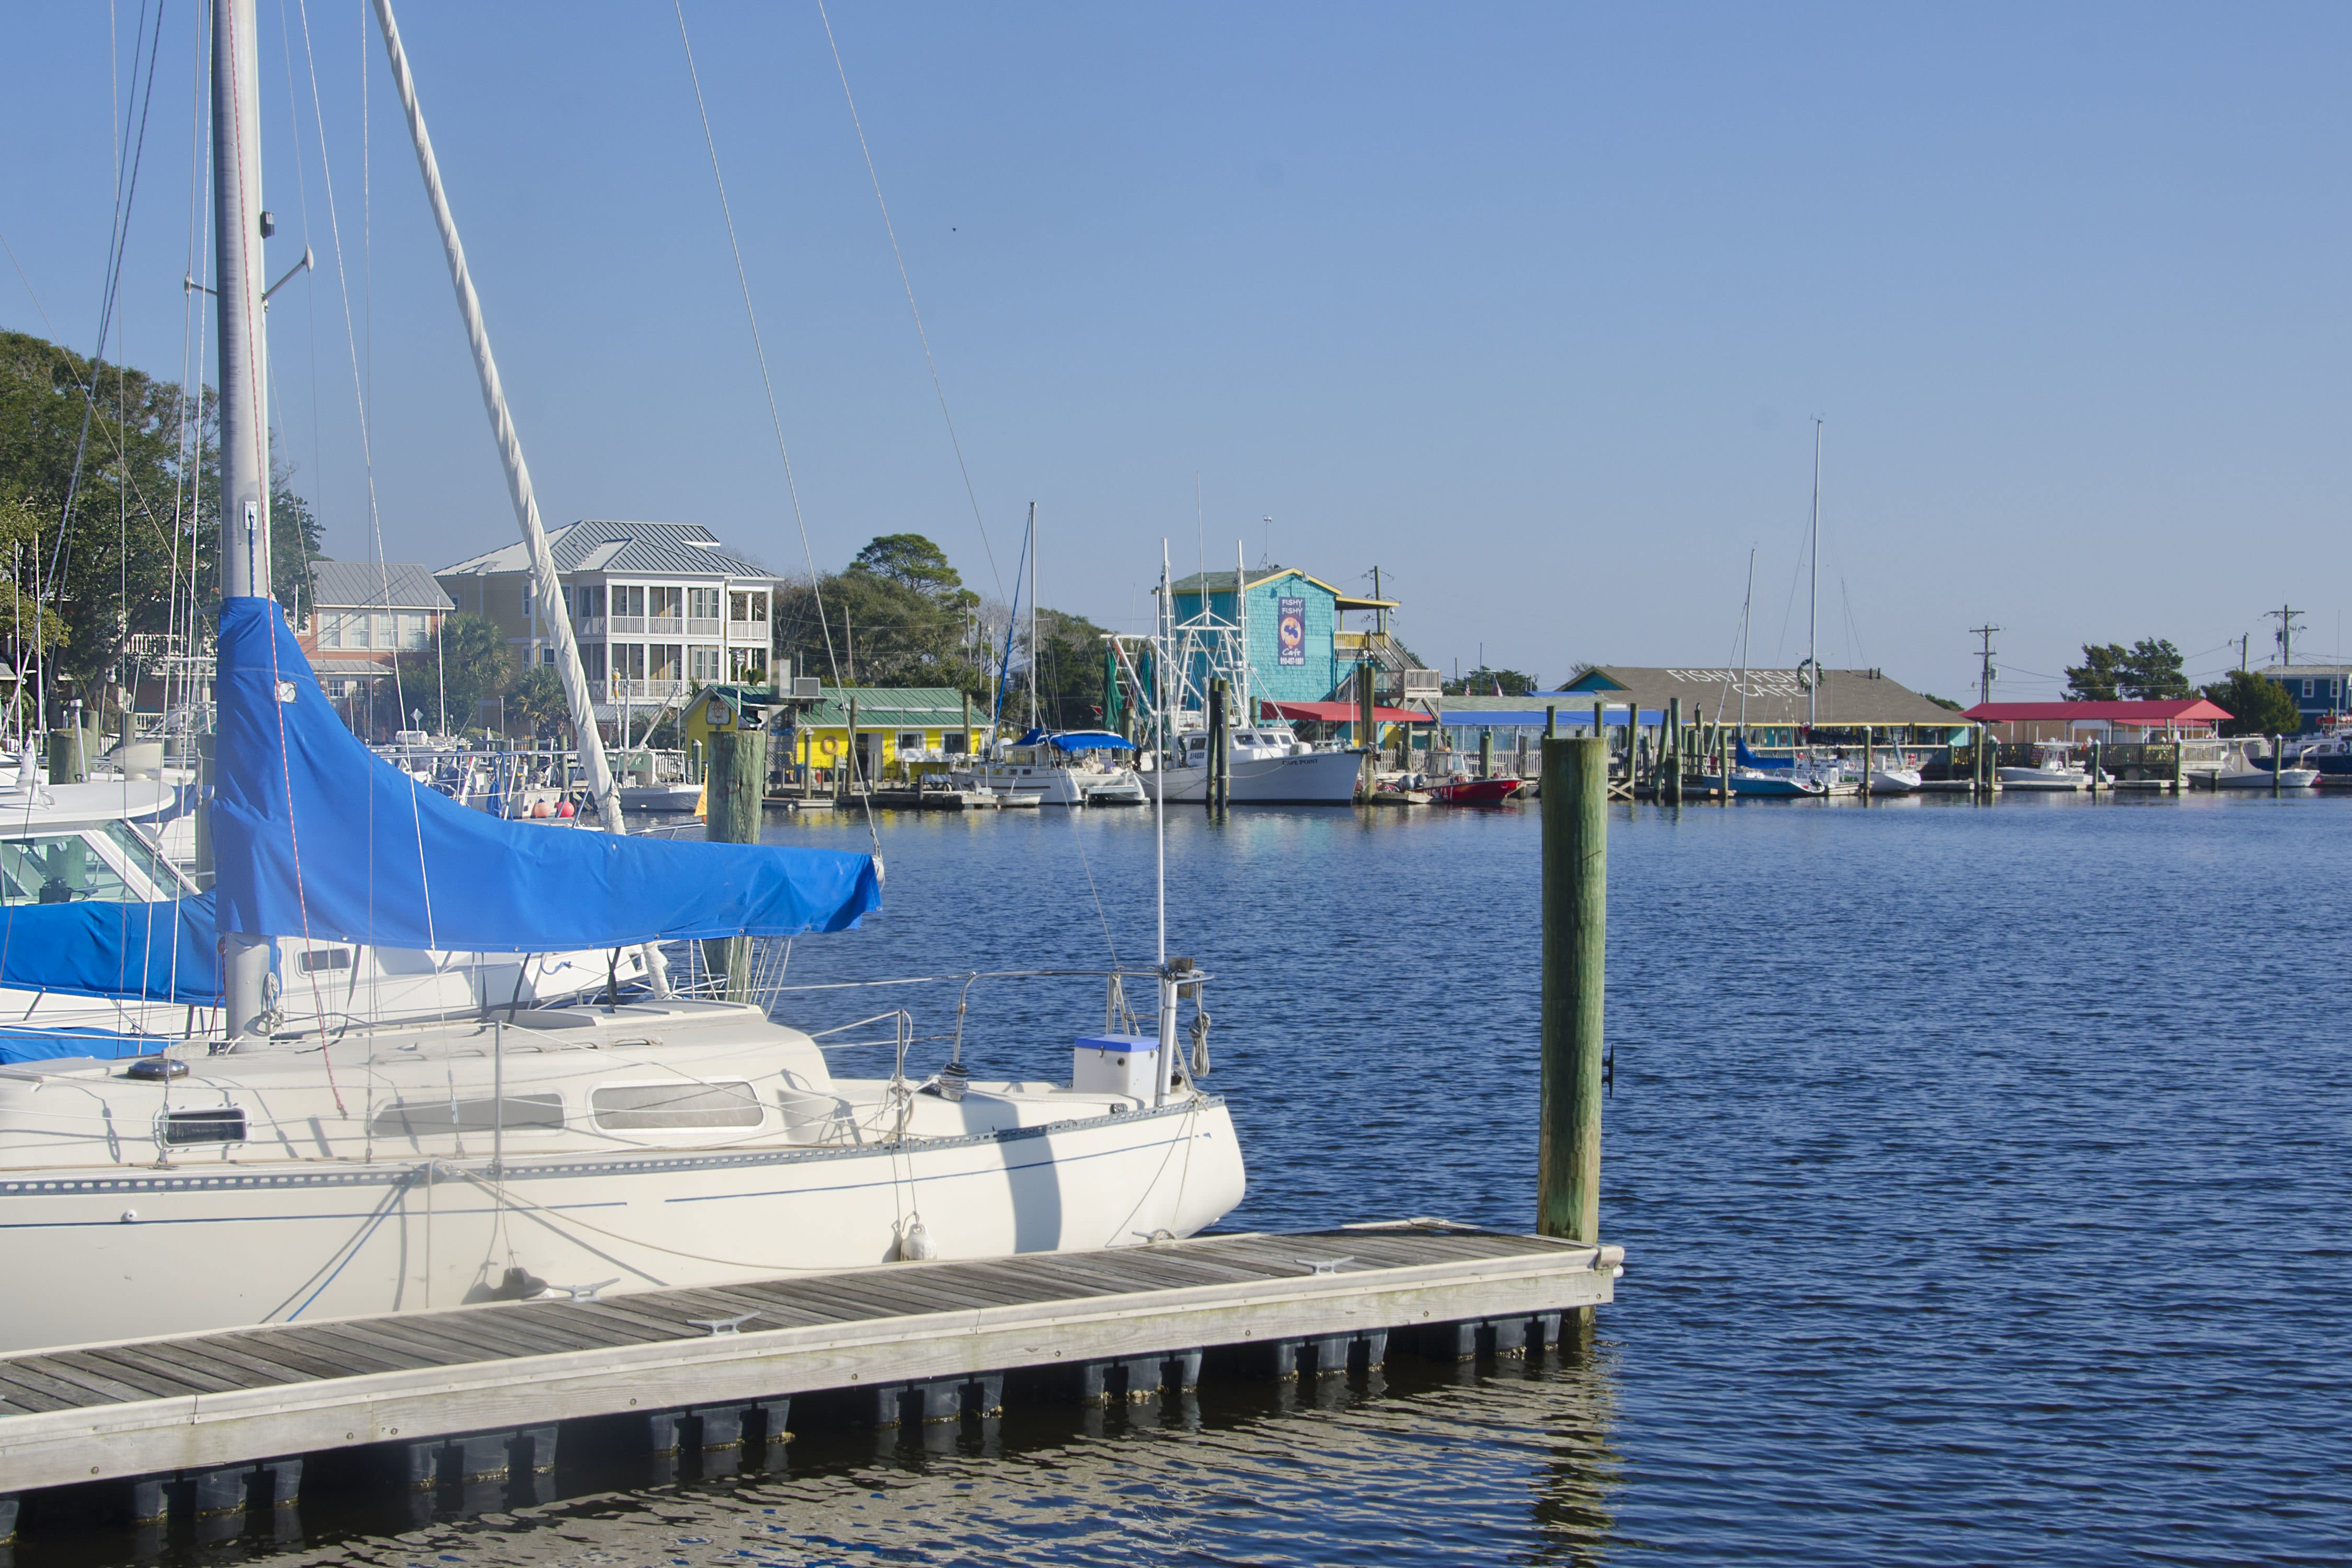 """<p>There's a reason this tiny harbor town at the outlet of the Cape Fear River was voted <a href=""""https://www.coastalliving.com/travel/top-10/2015-americas-happiest-seaside-towns?slide=160602#160602"""" rel=""""nofollow noopener"""" target=""""_blank"""" data-ylk=""""slk:America's Happiest Seaside Town in 2015"""" class=""""link rapid-noclick-resp"""">America's Happiest Seaside Town in 2015</a>. Bright white cottages with red roofs, stately sea captains' homes, two lighthouses, and water in seemingly every direction (what with the confluence of the river and the Intracoastal Waterway) create vistas at every bend in the road. It's a vintage postcard sent from a halcyon past.</p>"""